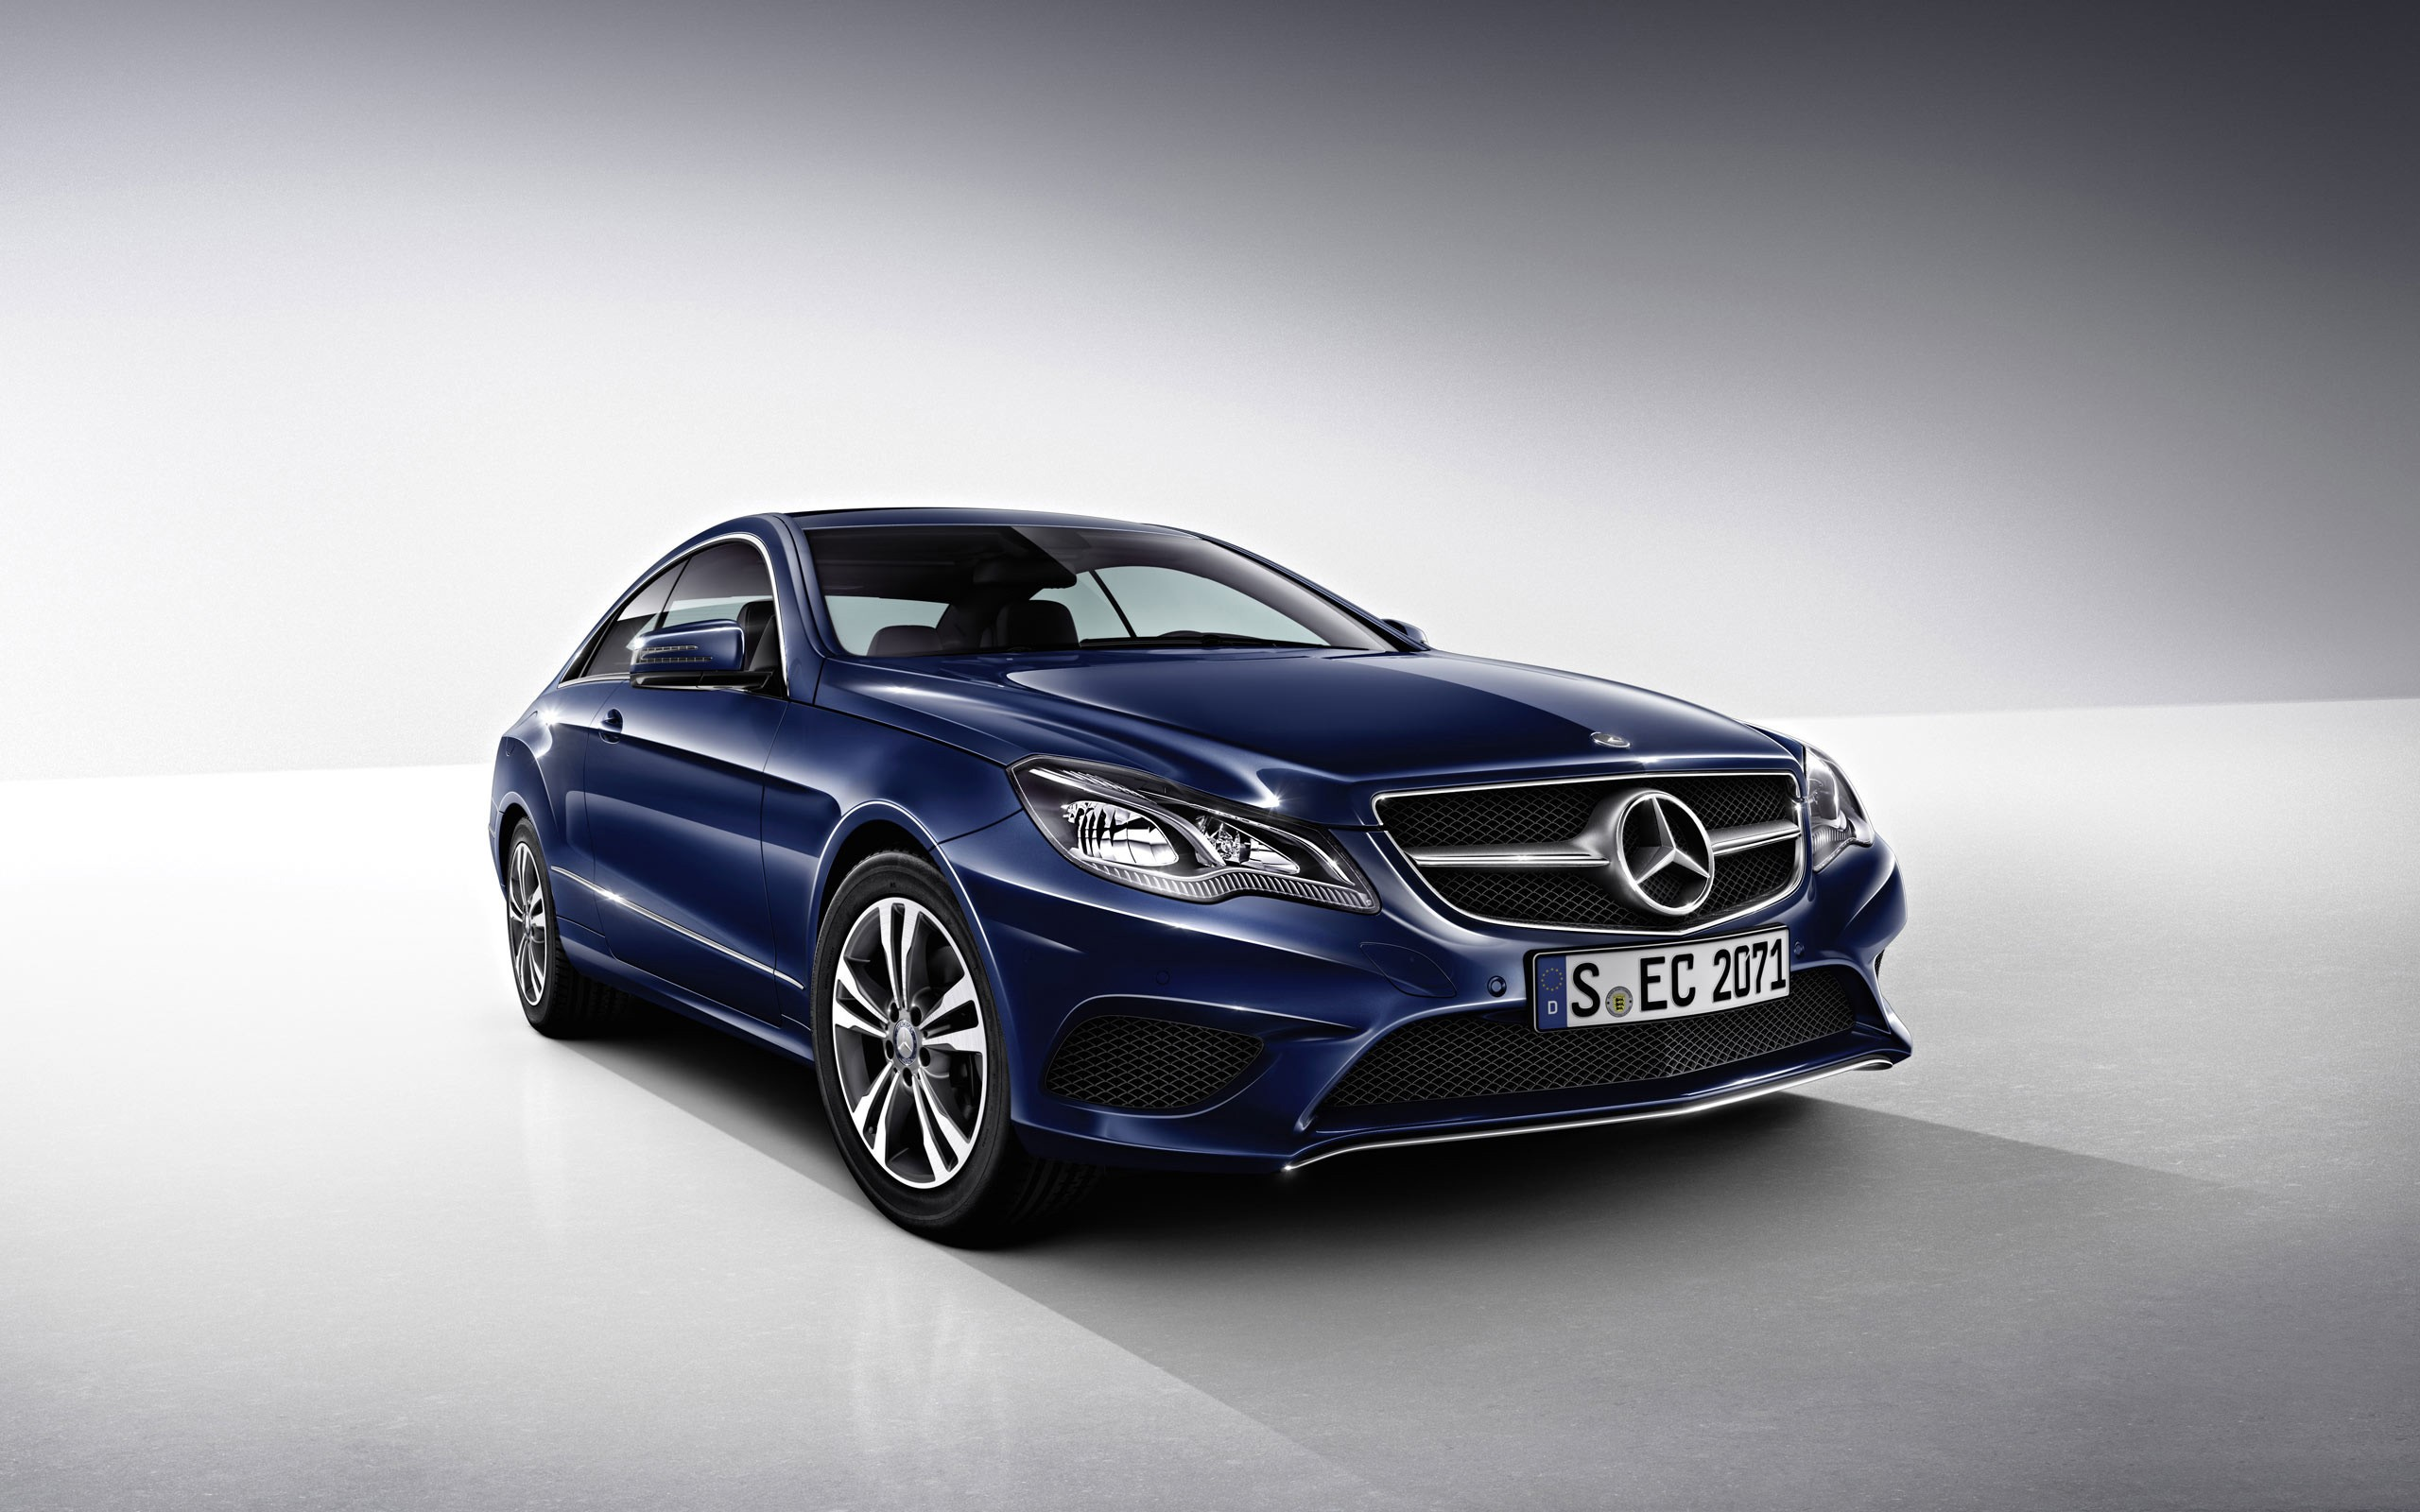 2014 Mercedes Benz E Class Coupe Wallpaper Hd Car